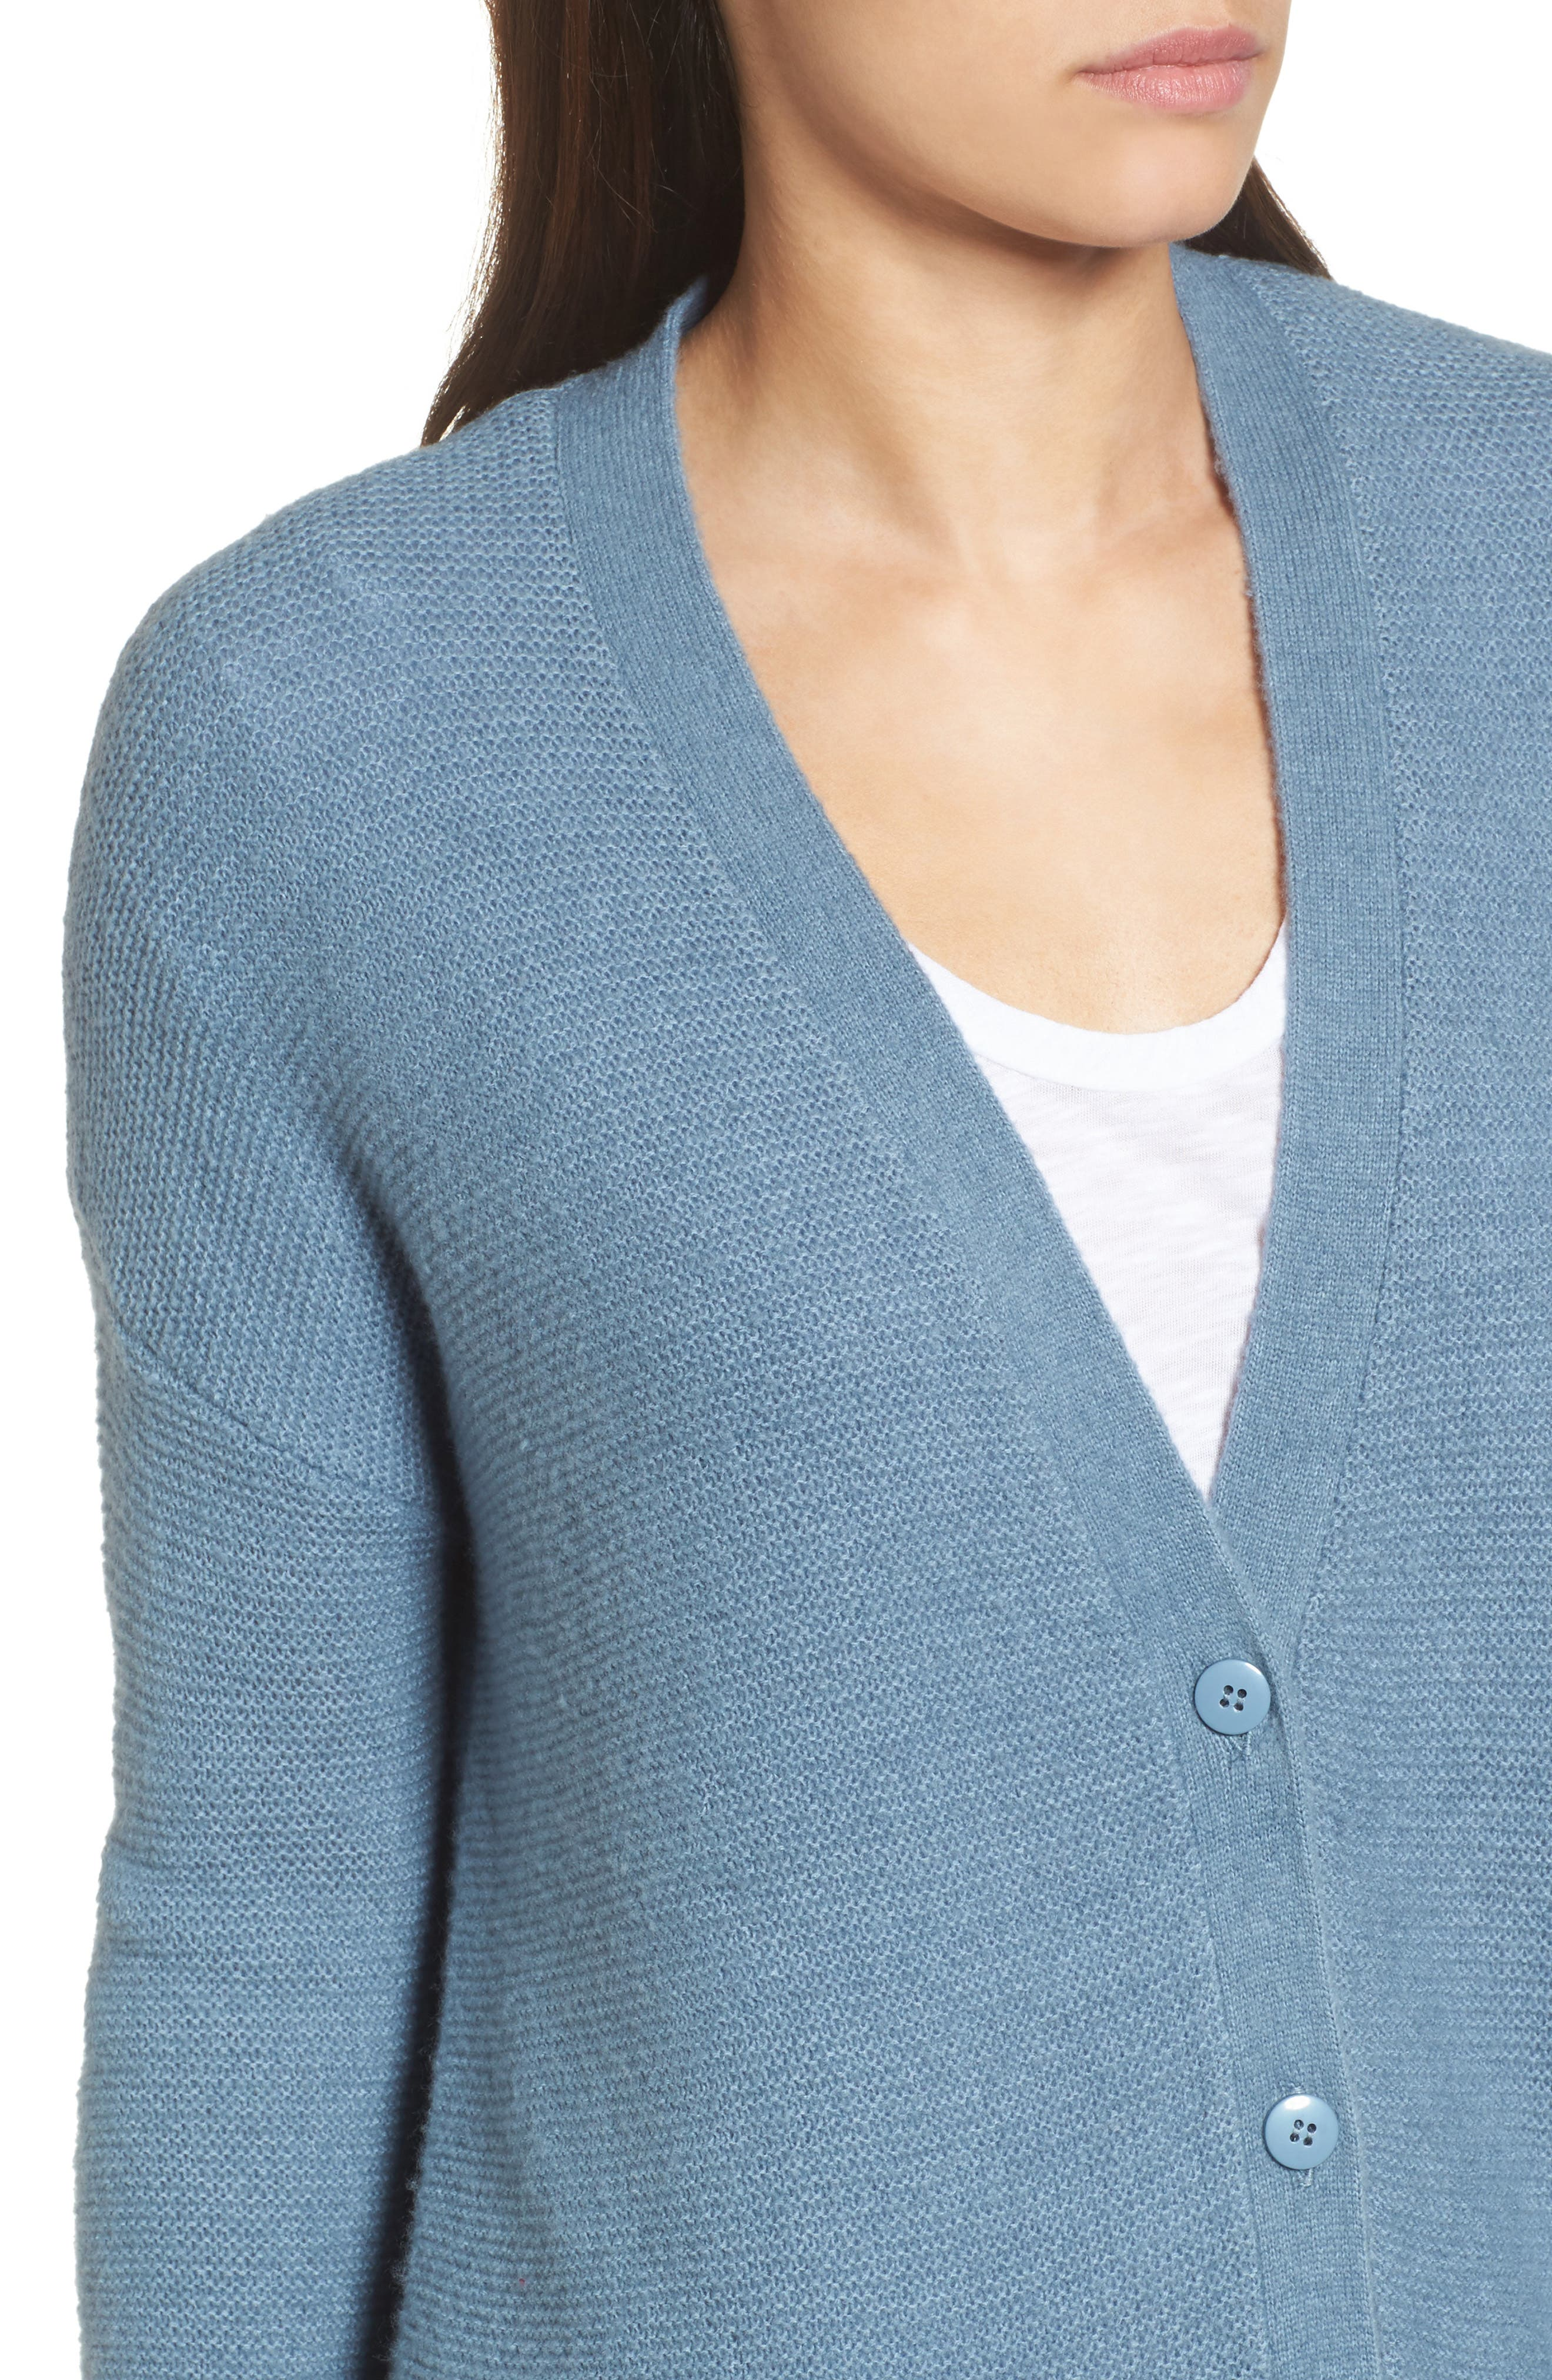 Relaxed Boyfriend Cardigan,                             Alternate thumbnail 4, color,                             Blue